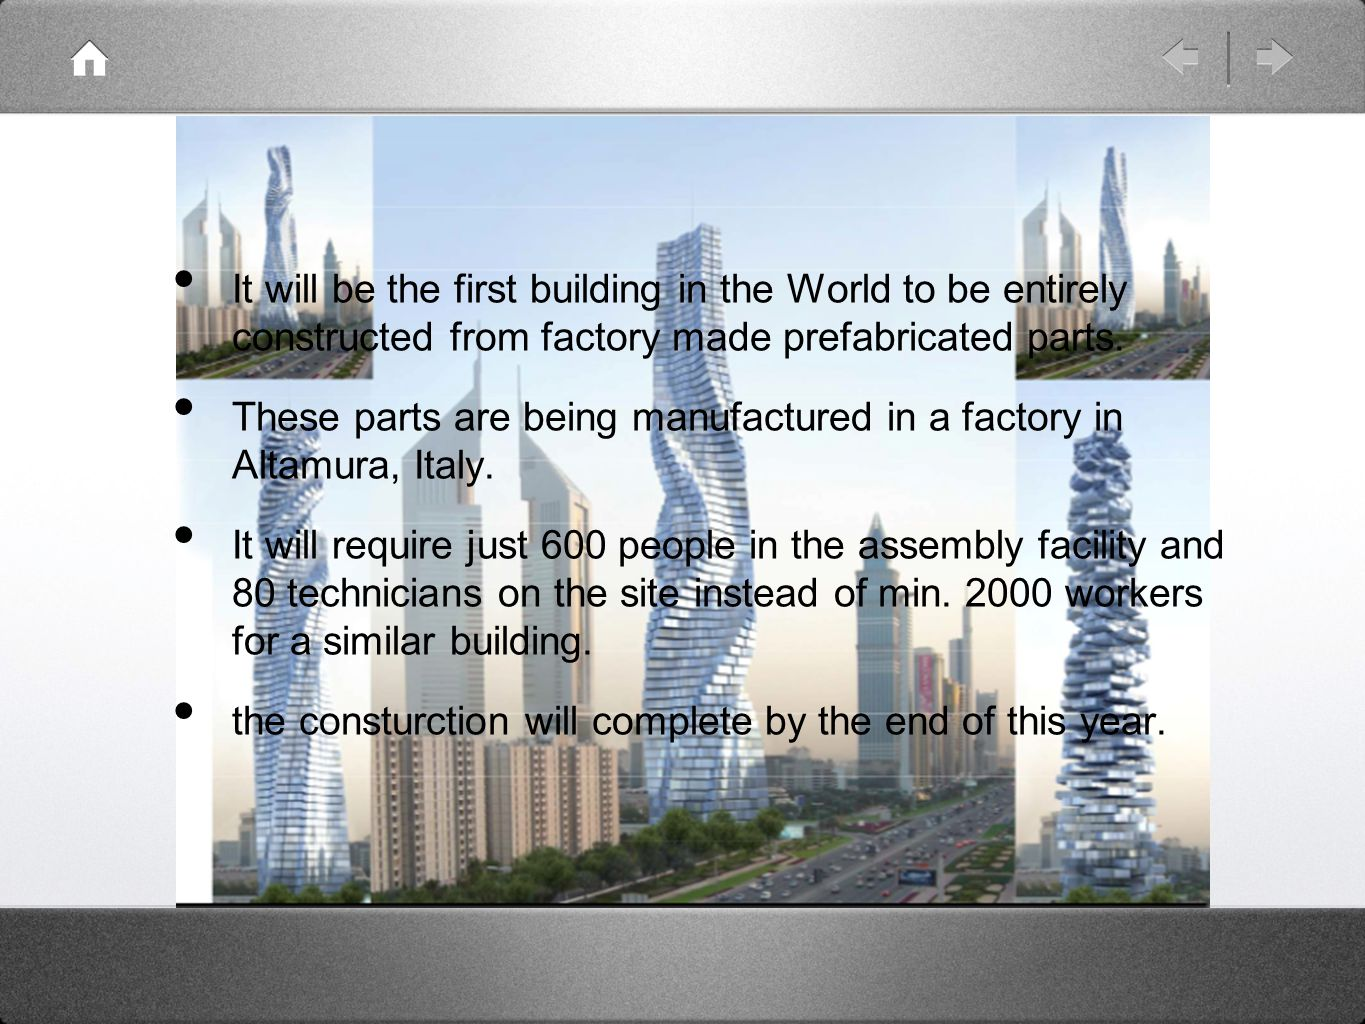 It will be the first building in the World to be entirely constructed from factory made prefabricated parts.